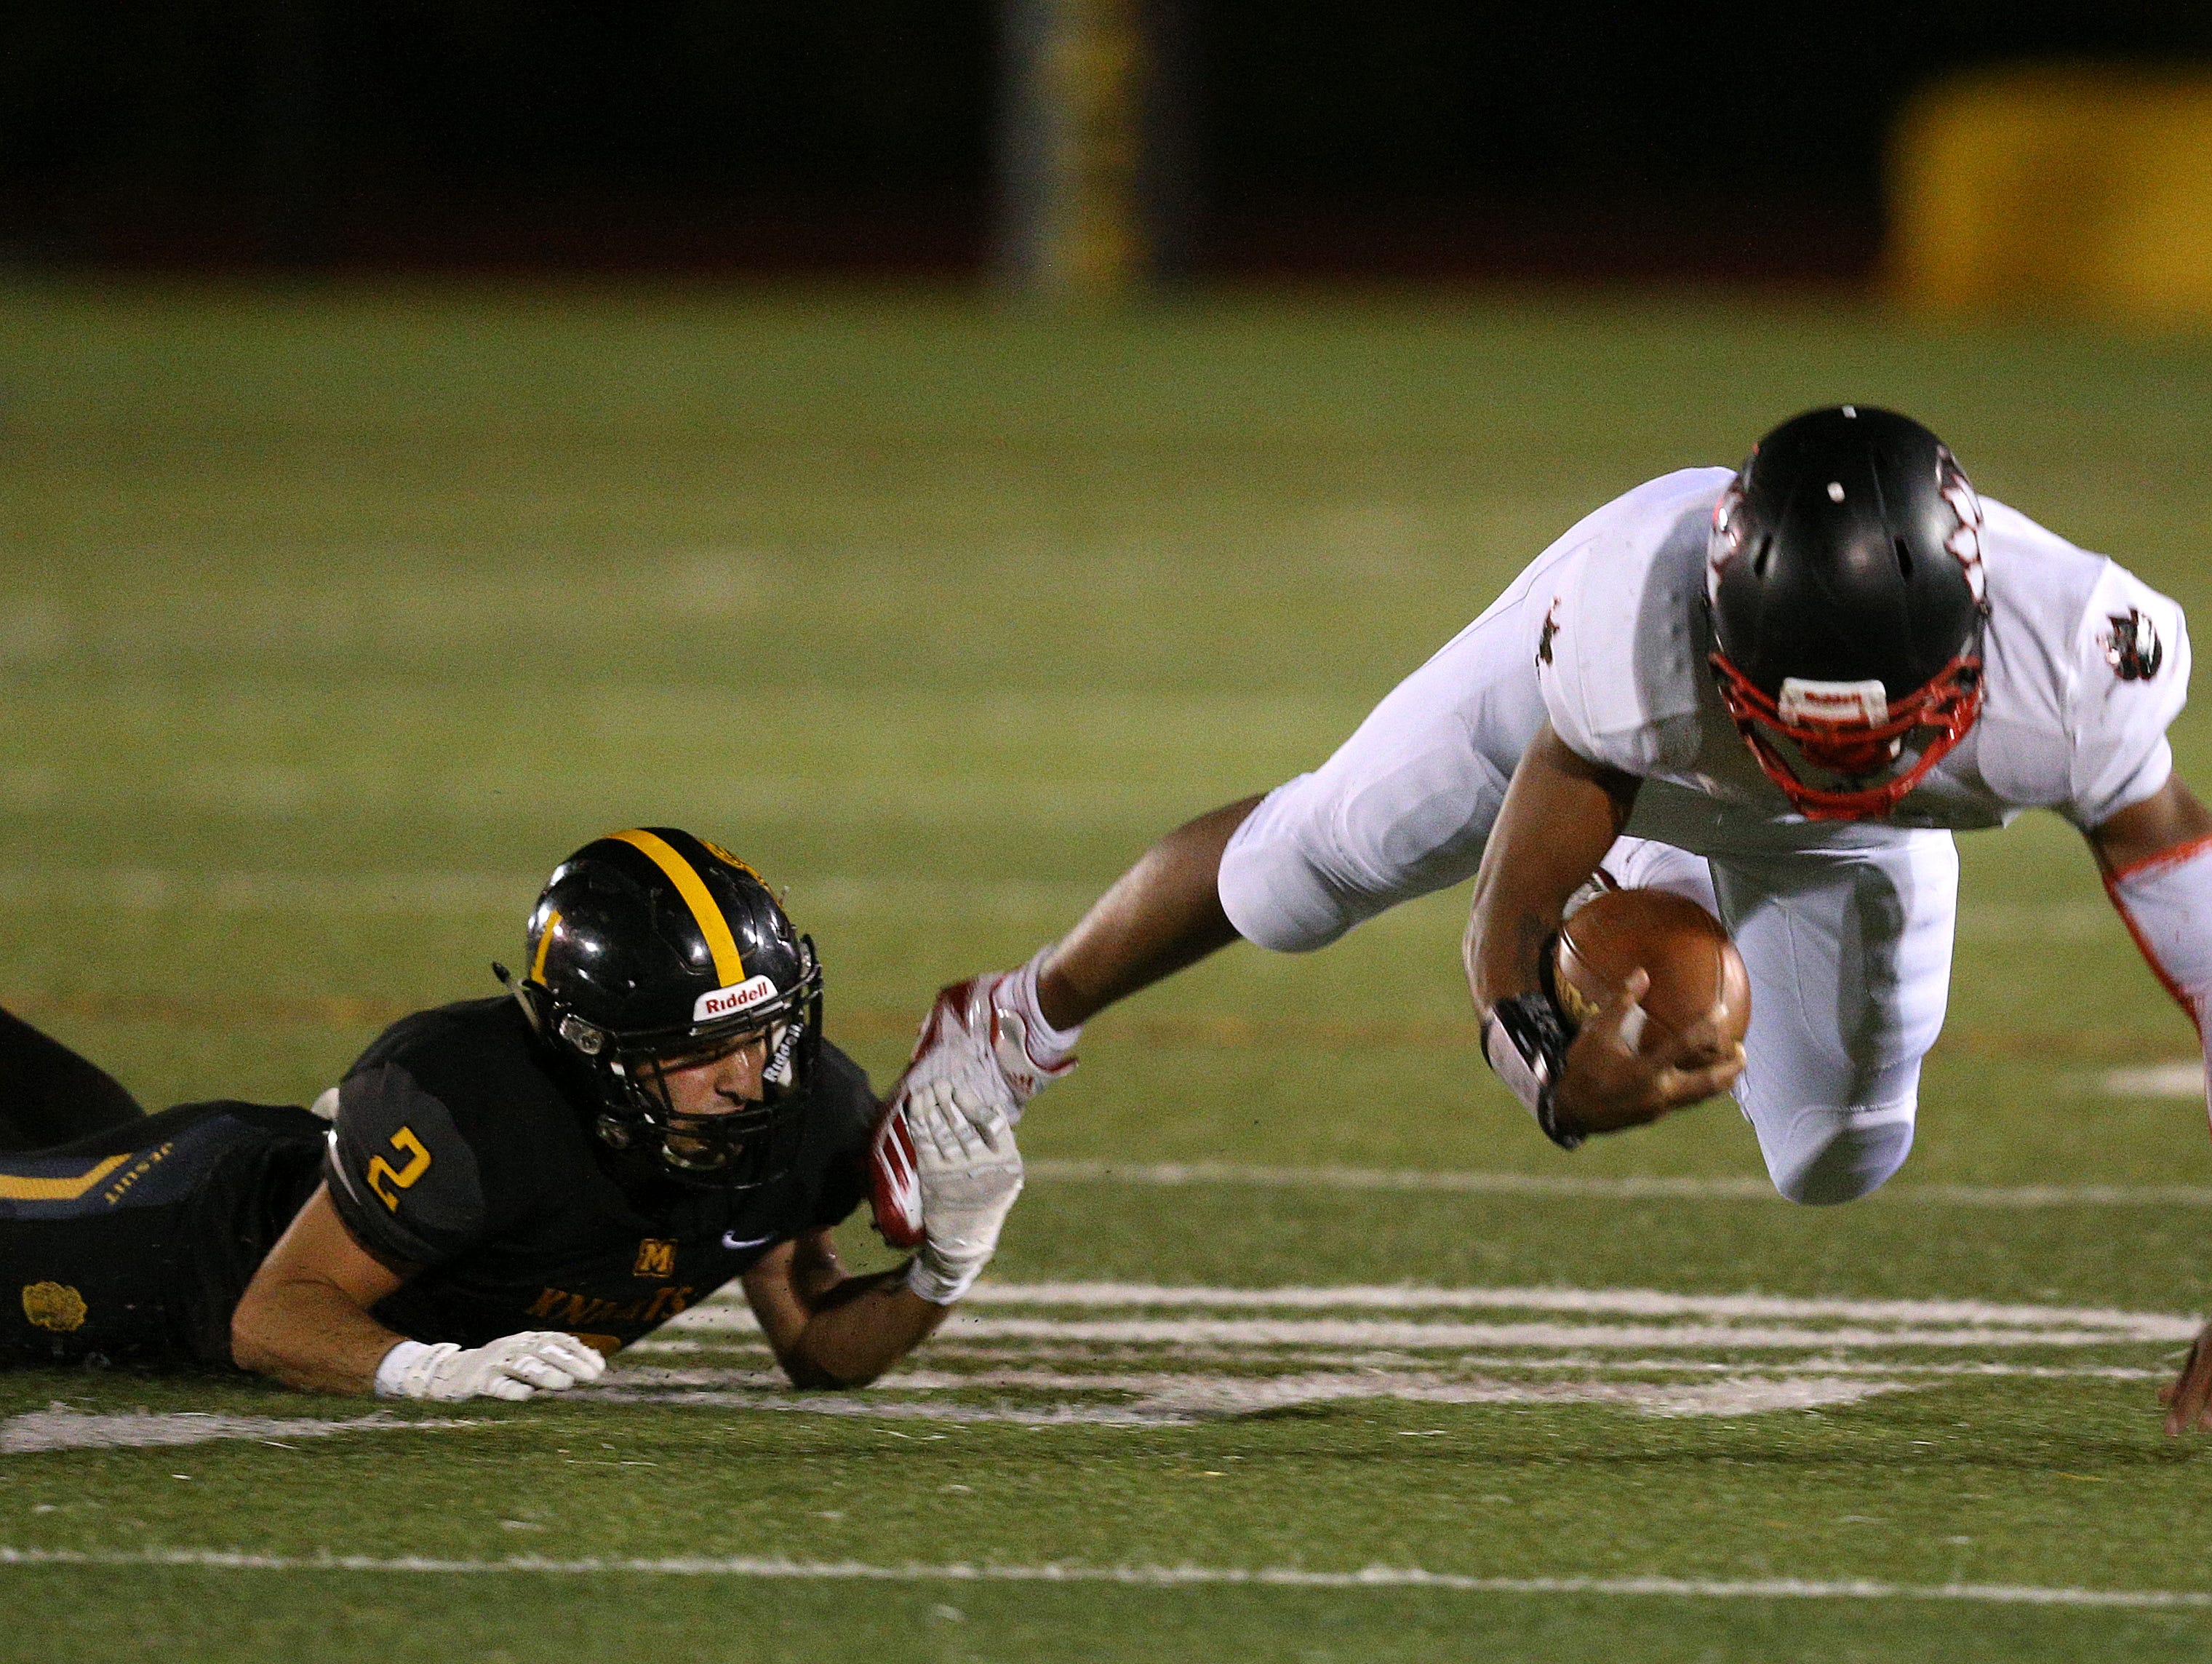 McQuaid's Josh Hill makes a shoestring tackle on Wilson's Desi Floyd Jr.  Floyd rushed for 348 yards and 2 touchdowns.